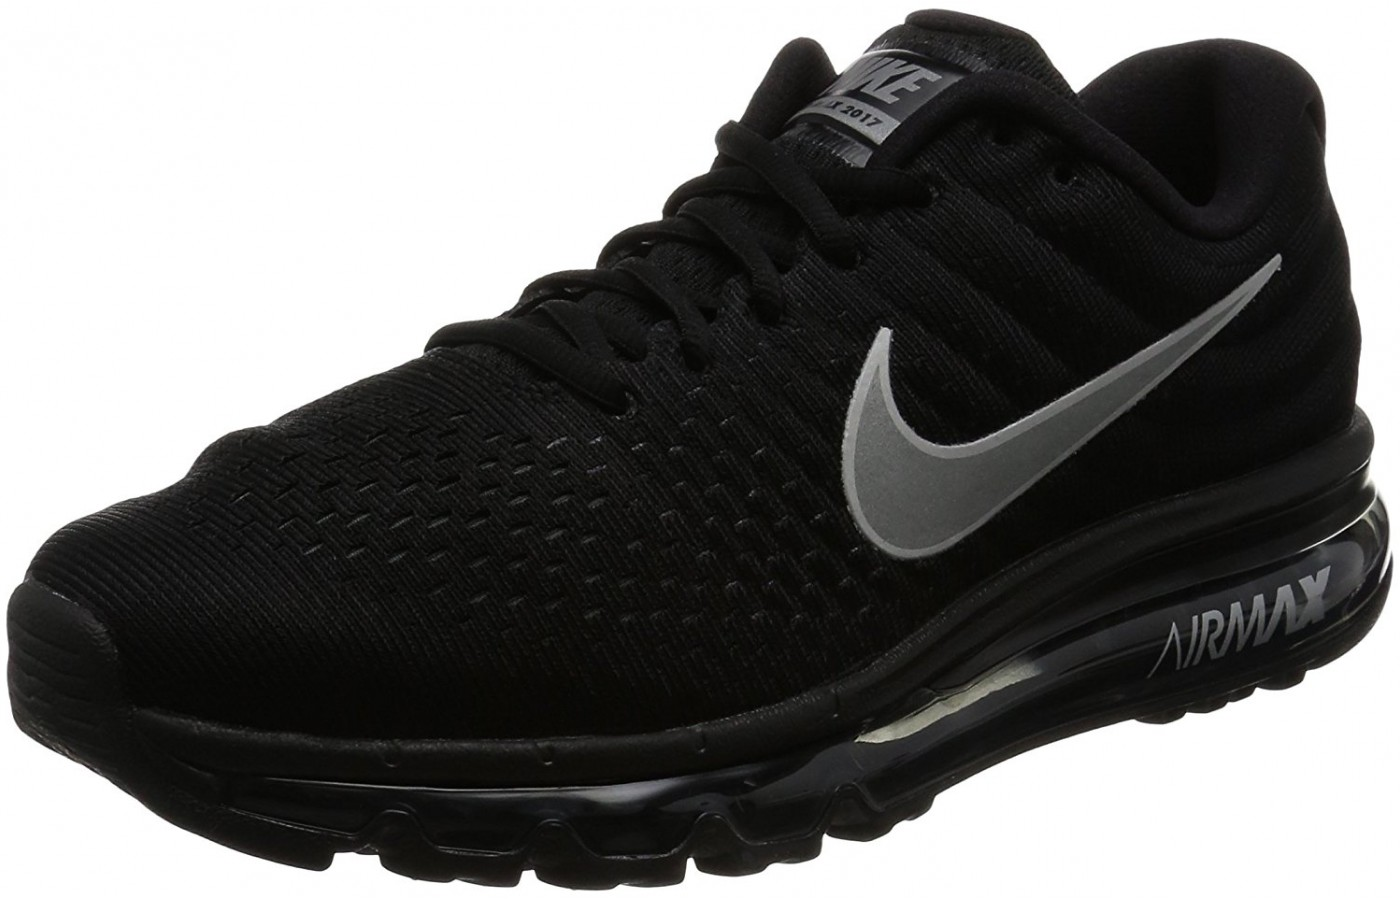 0c22f15b49 Nike Air Max 2019 Tested for Performance in 2019 | WalkJogRun